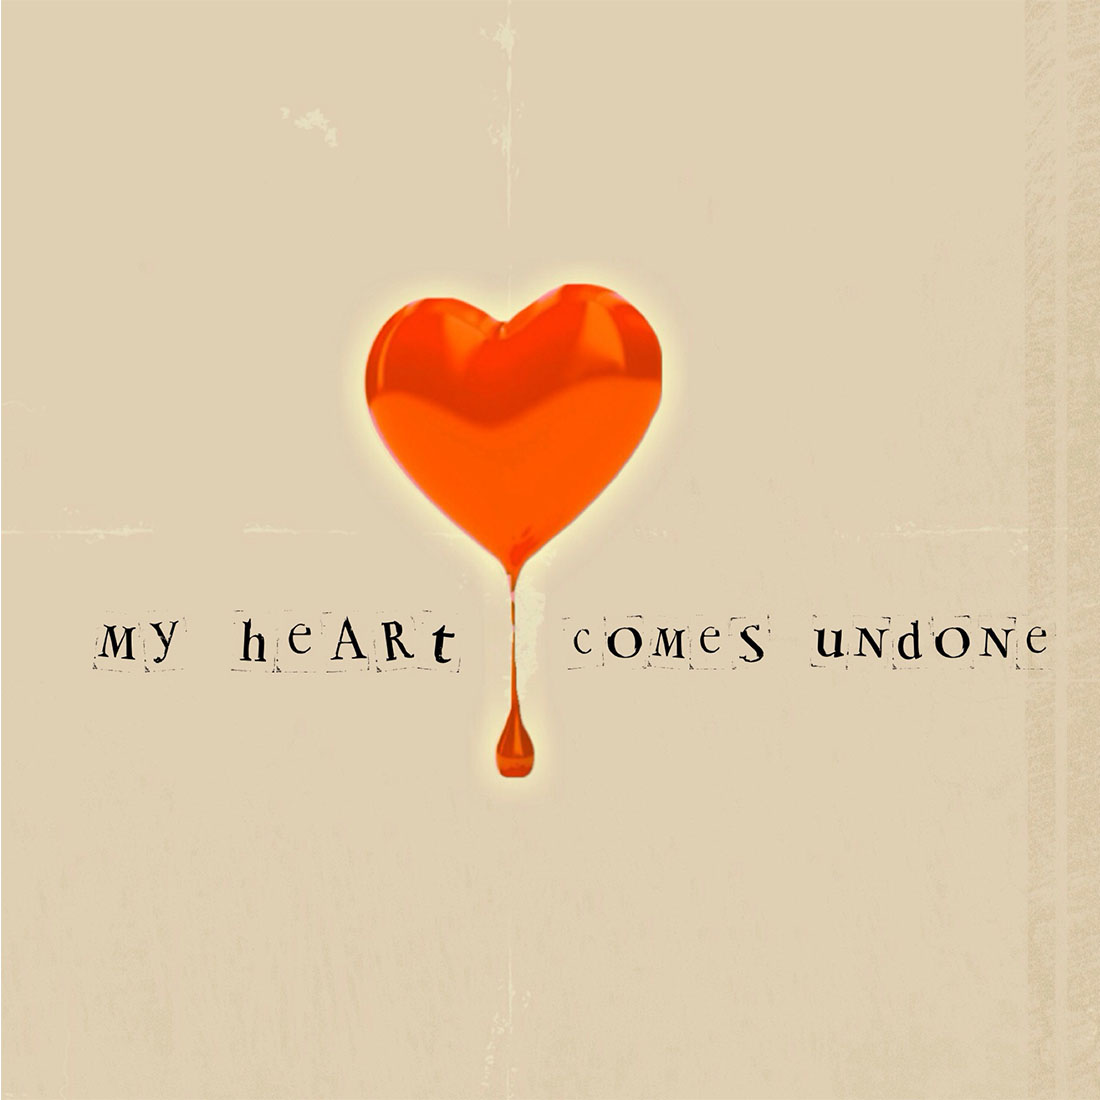 my heart comes undone cover art.jpg